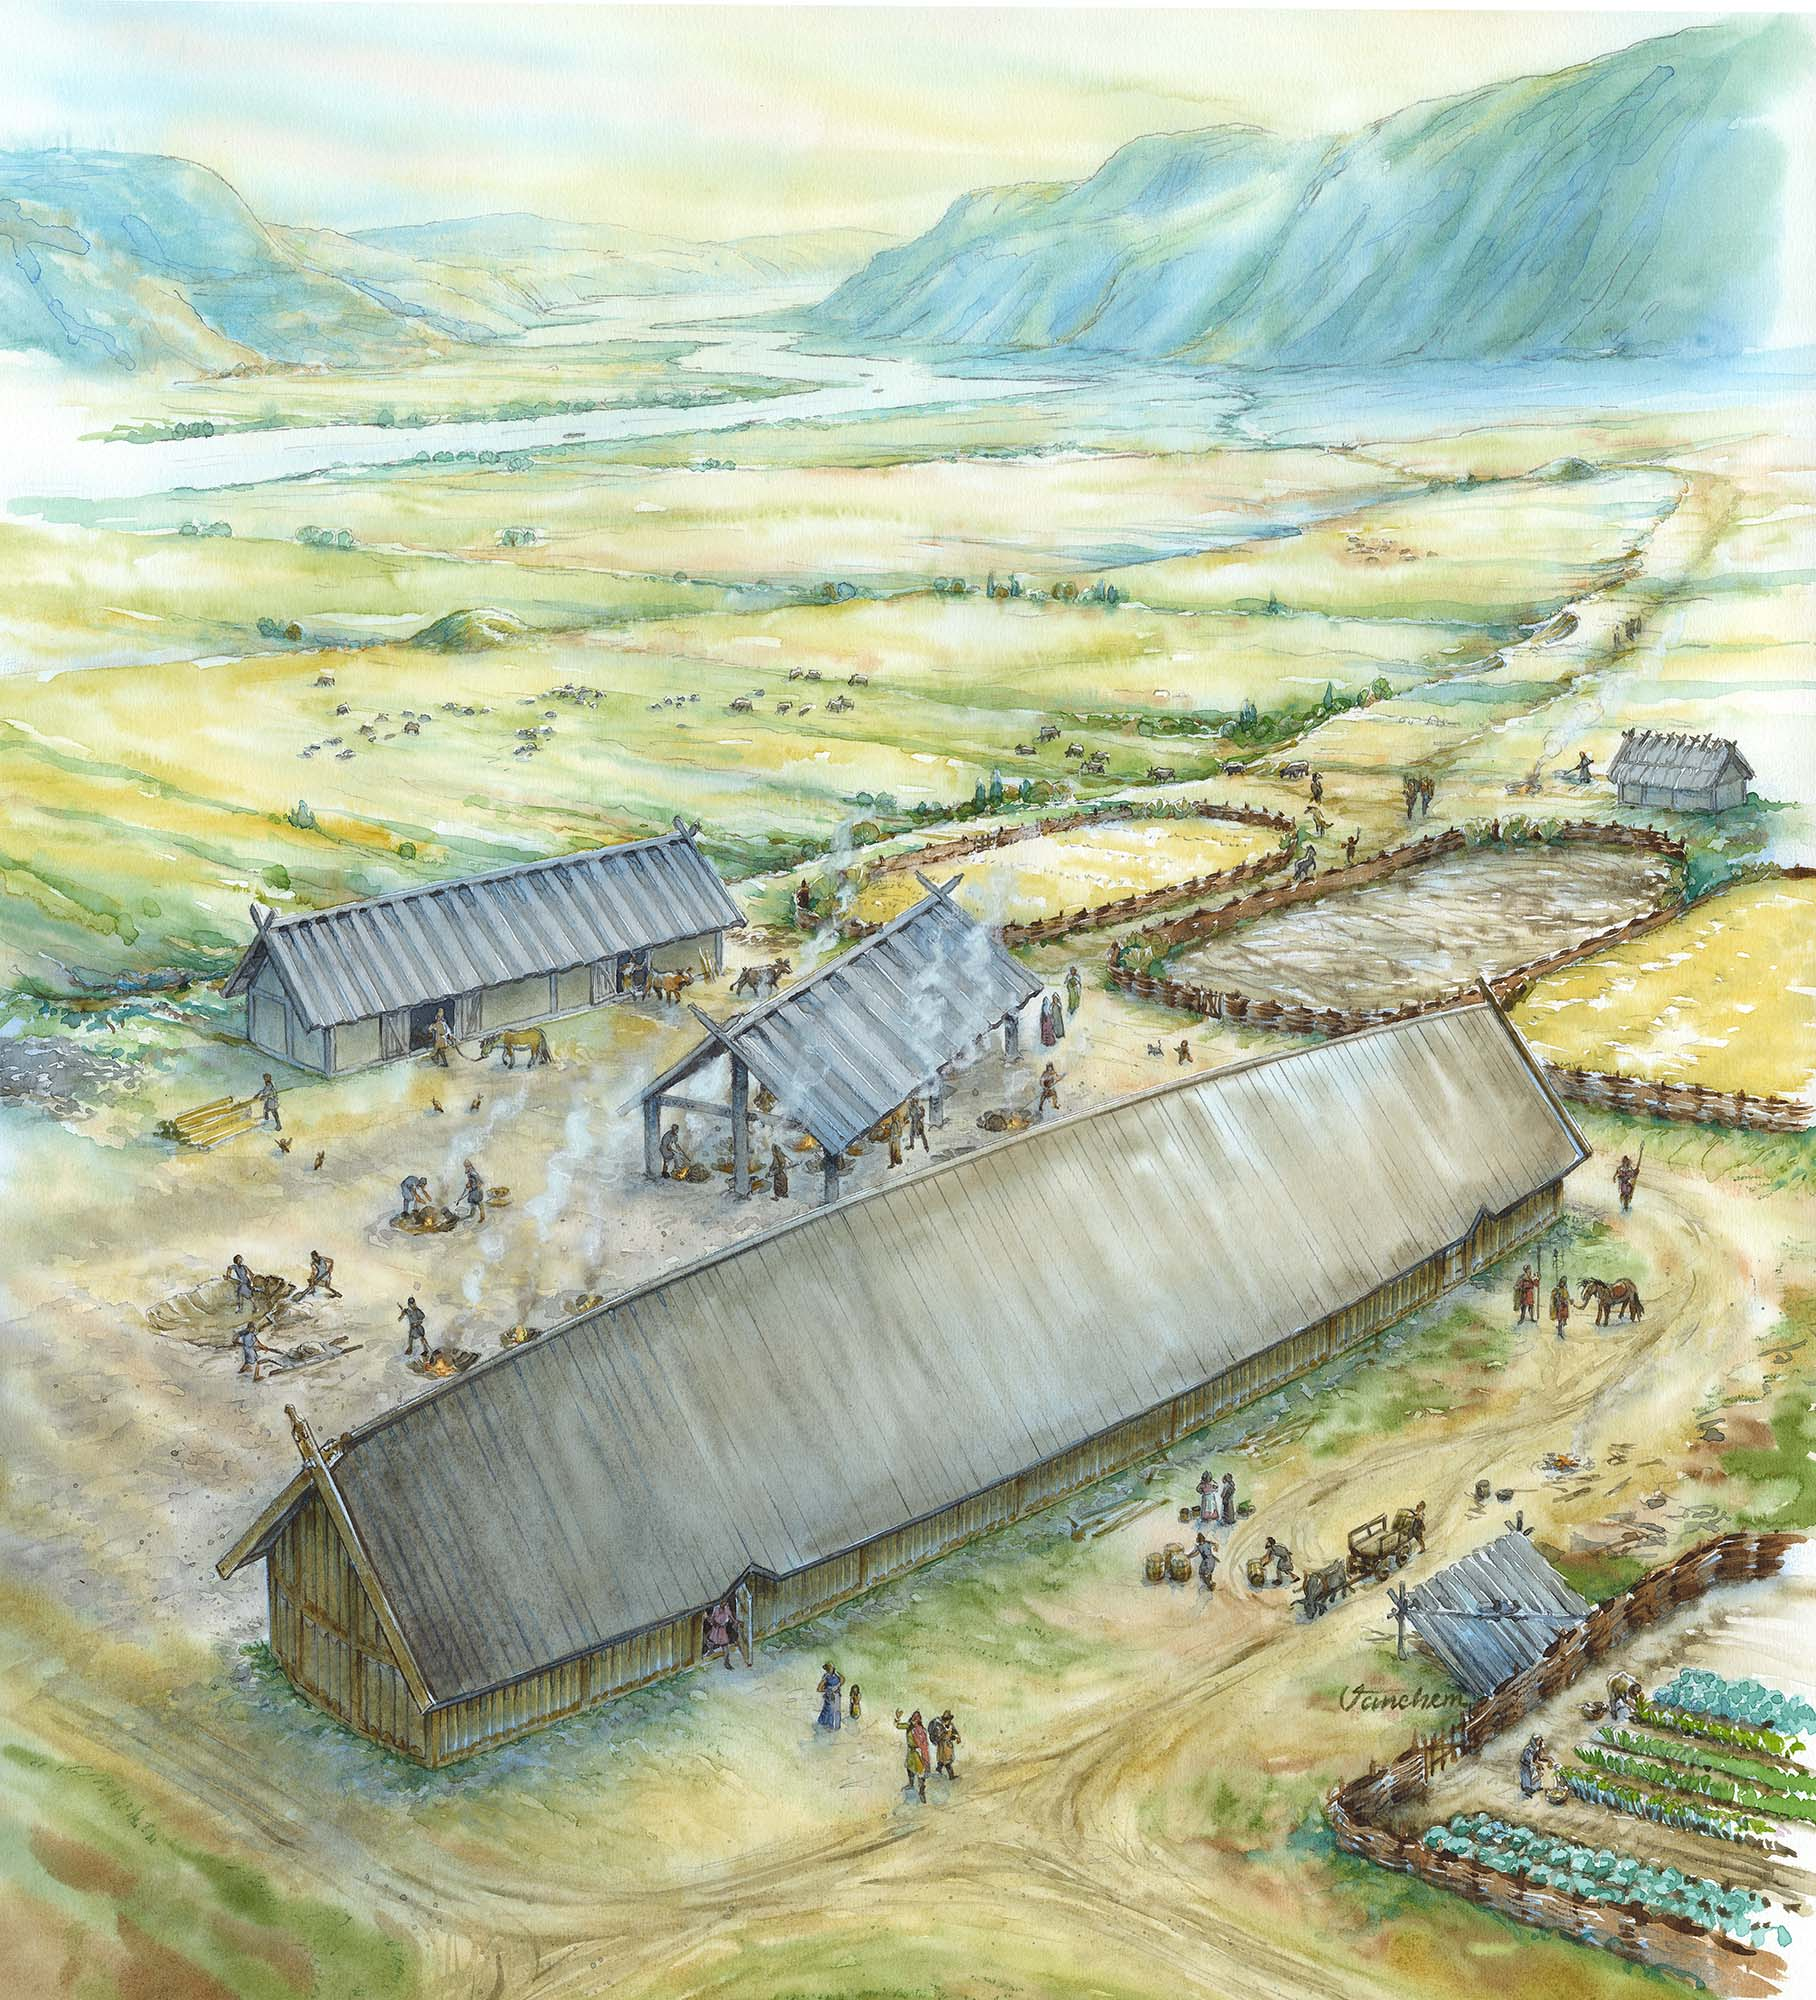 Roman Iron Age settlement in the south of Norway (Client: Aust Agder Museum og Arkiv in Arendal, Norway).